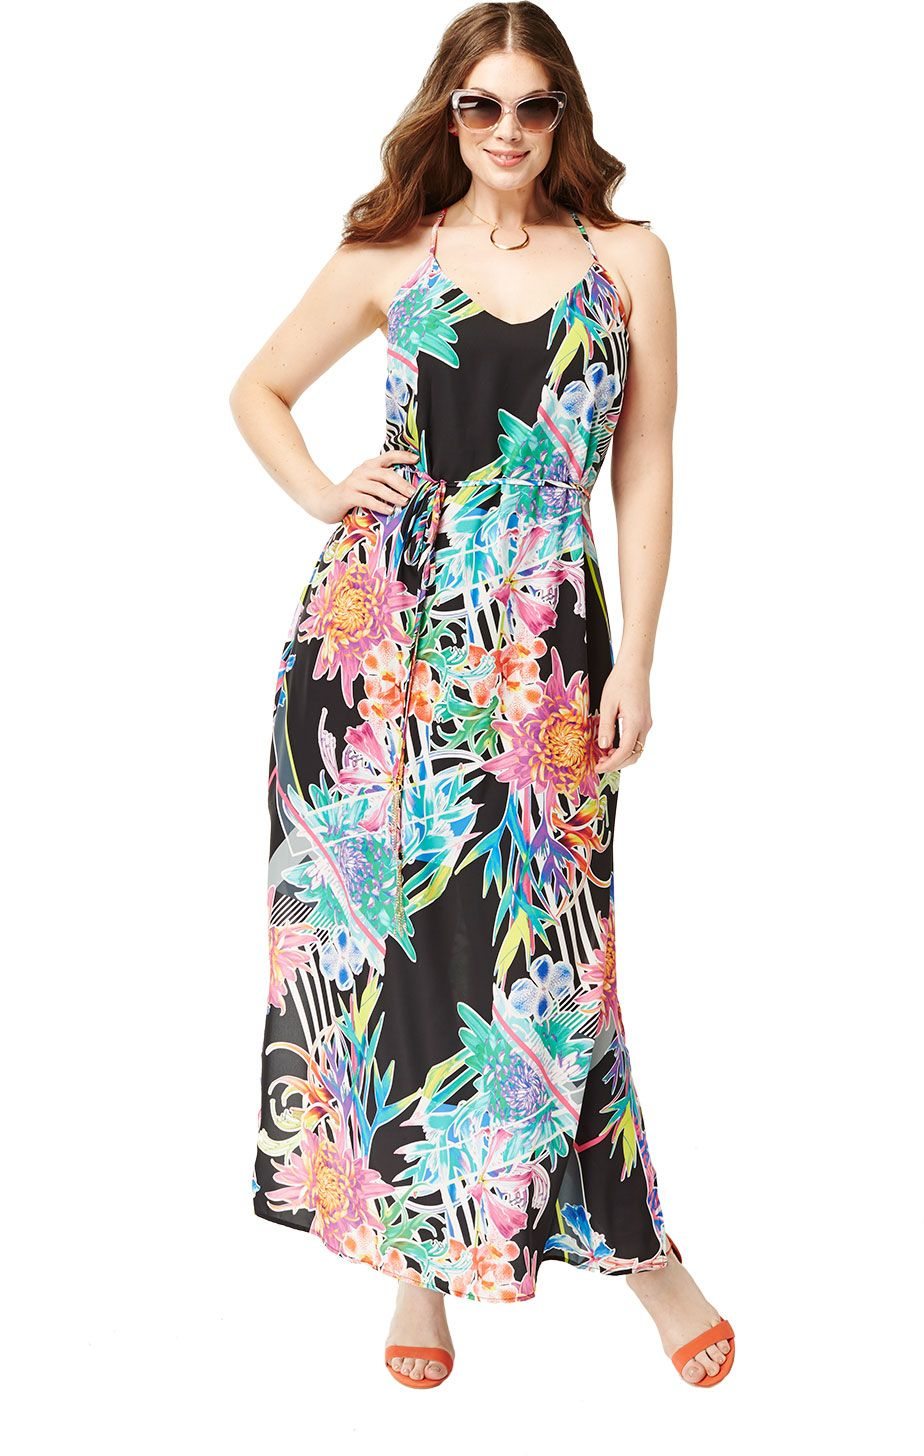 7e809f899968e Take plus size style to the next level in a made-for-summer maxi ...